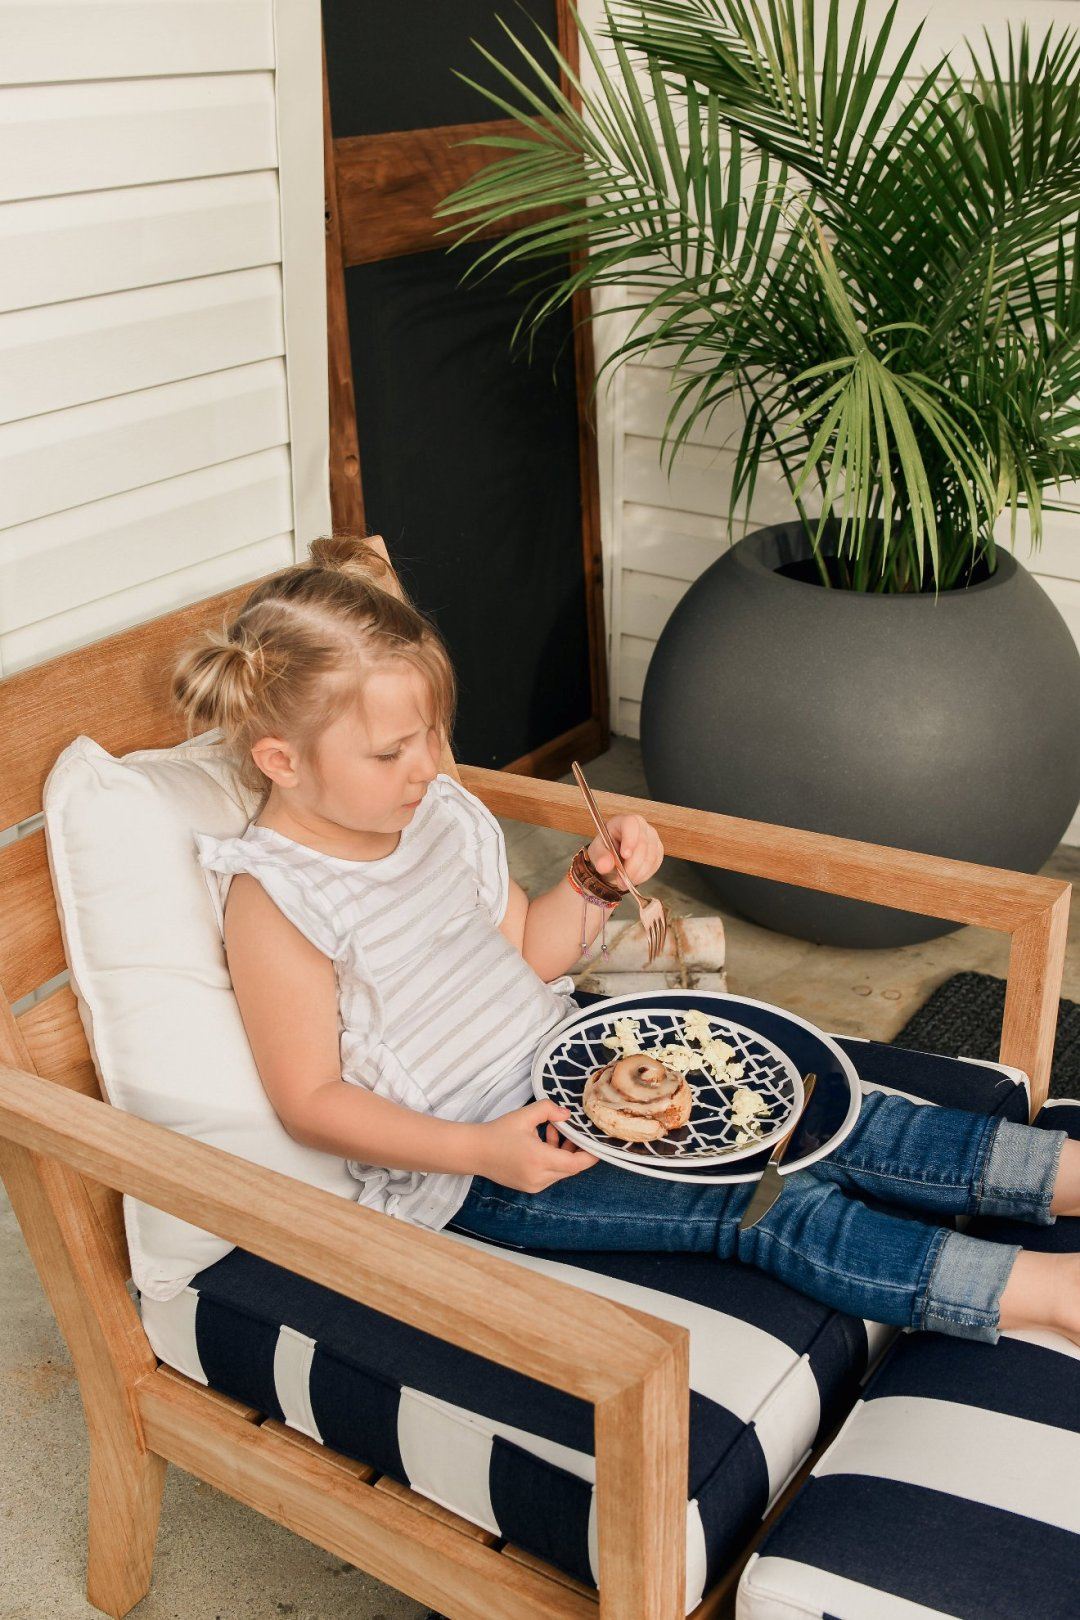 Little girl eating cinnamon roll on chair with potted plant in background